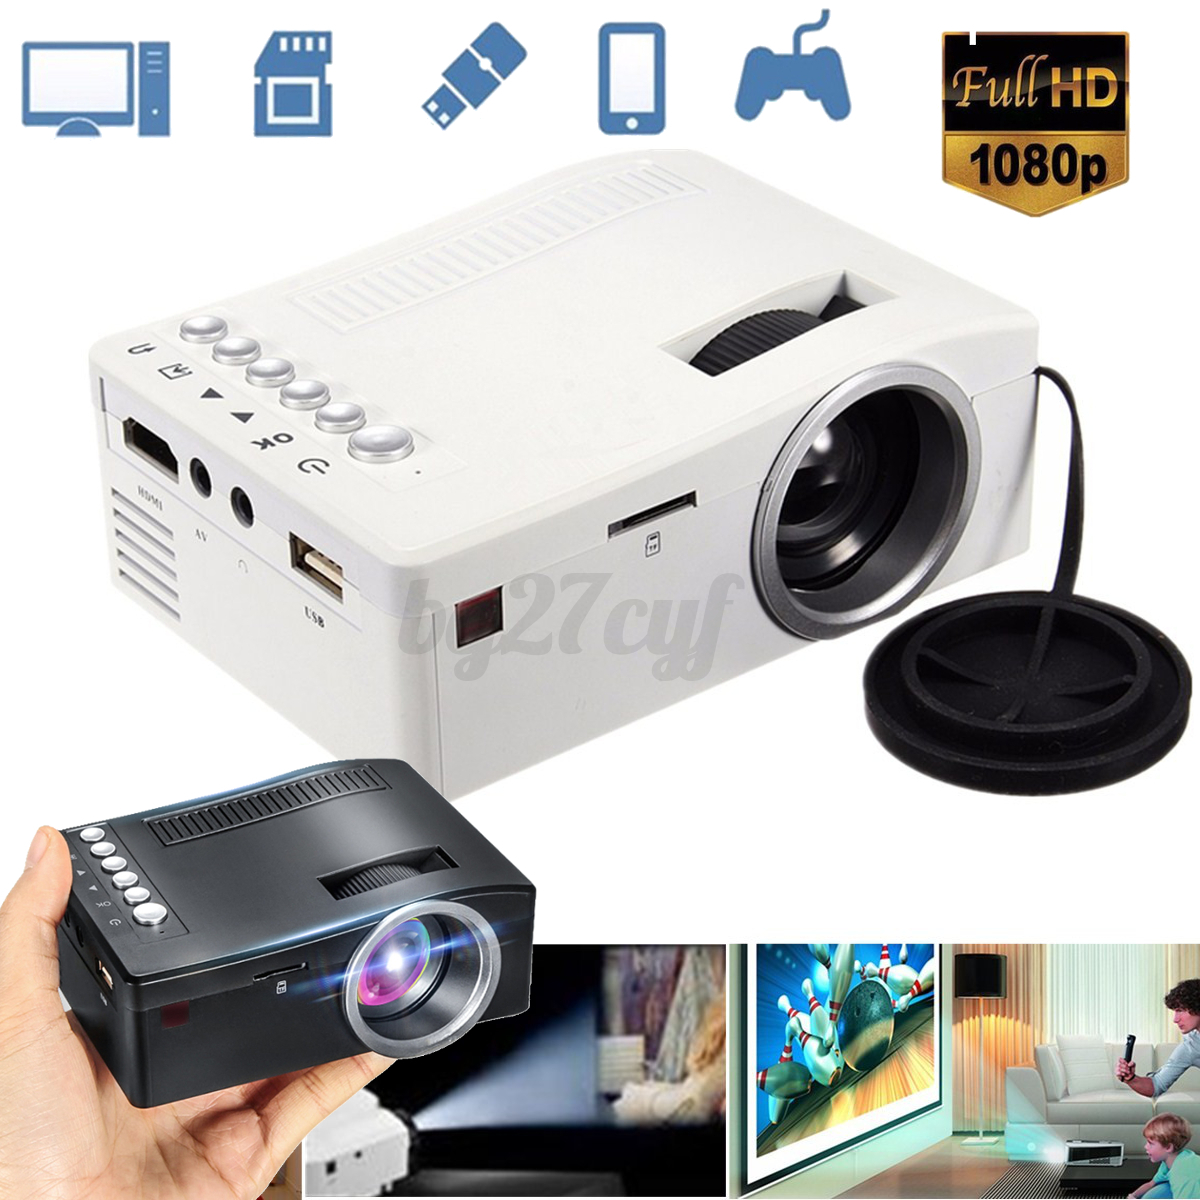 Portable 1080p hd mini projector multimedia home theater for Pocket hd projector 1080p